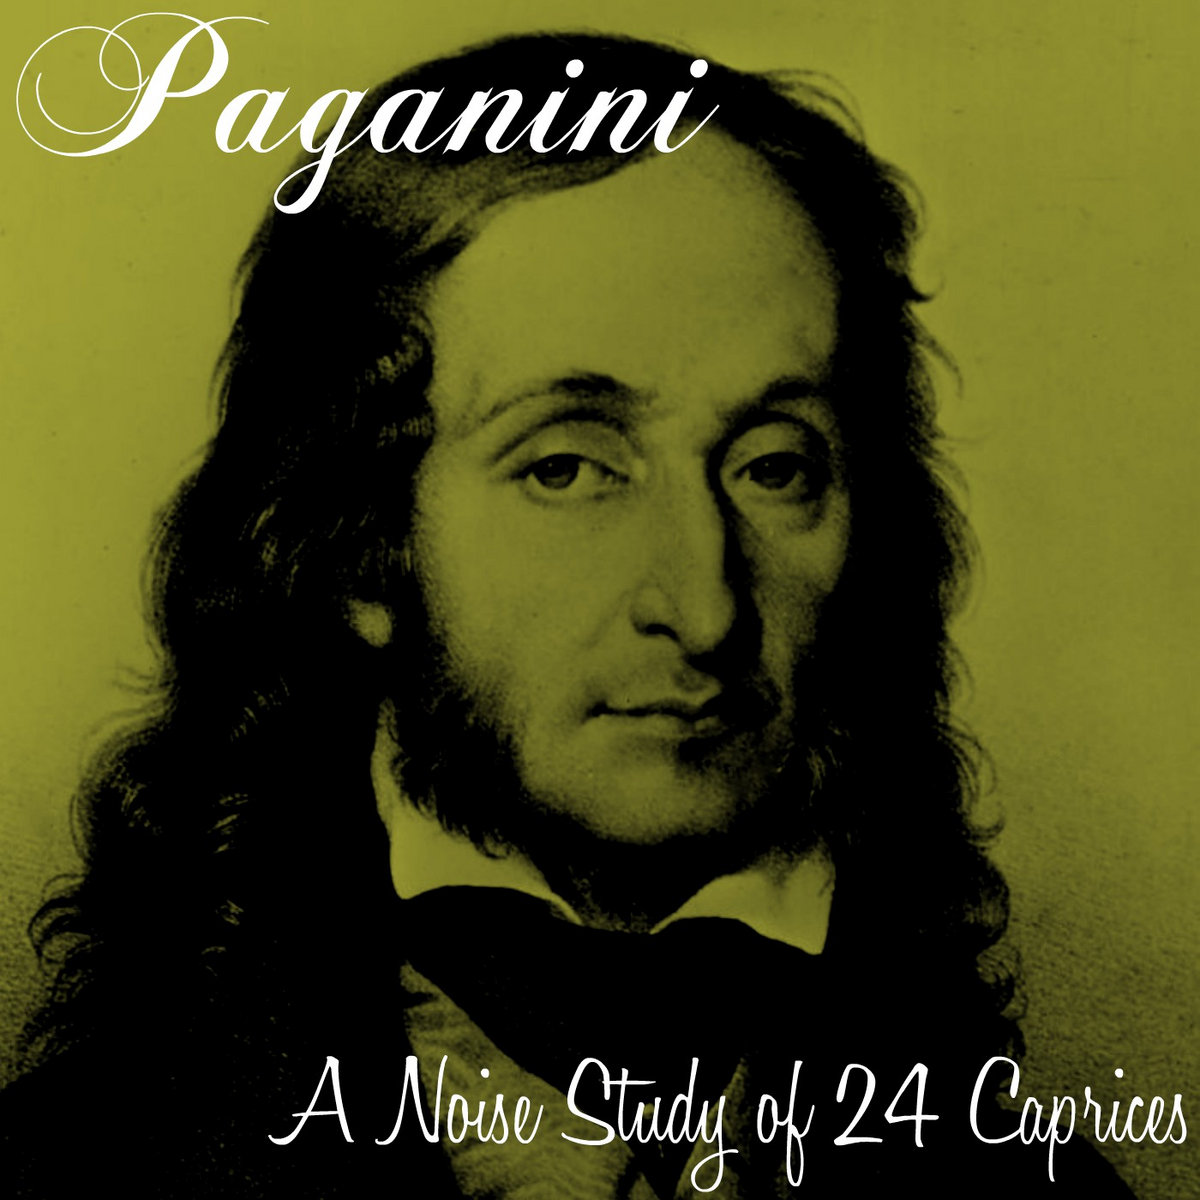 cheap for sale 100% quality great prices Paganini: A Noise Study of 24 Caprices   Harsh Noise Movement